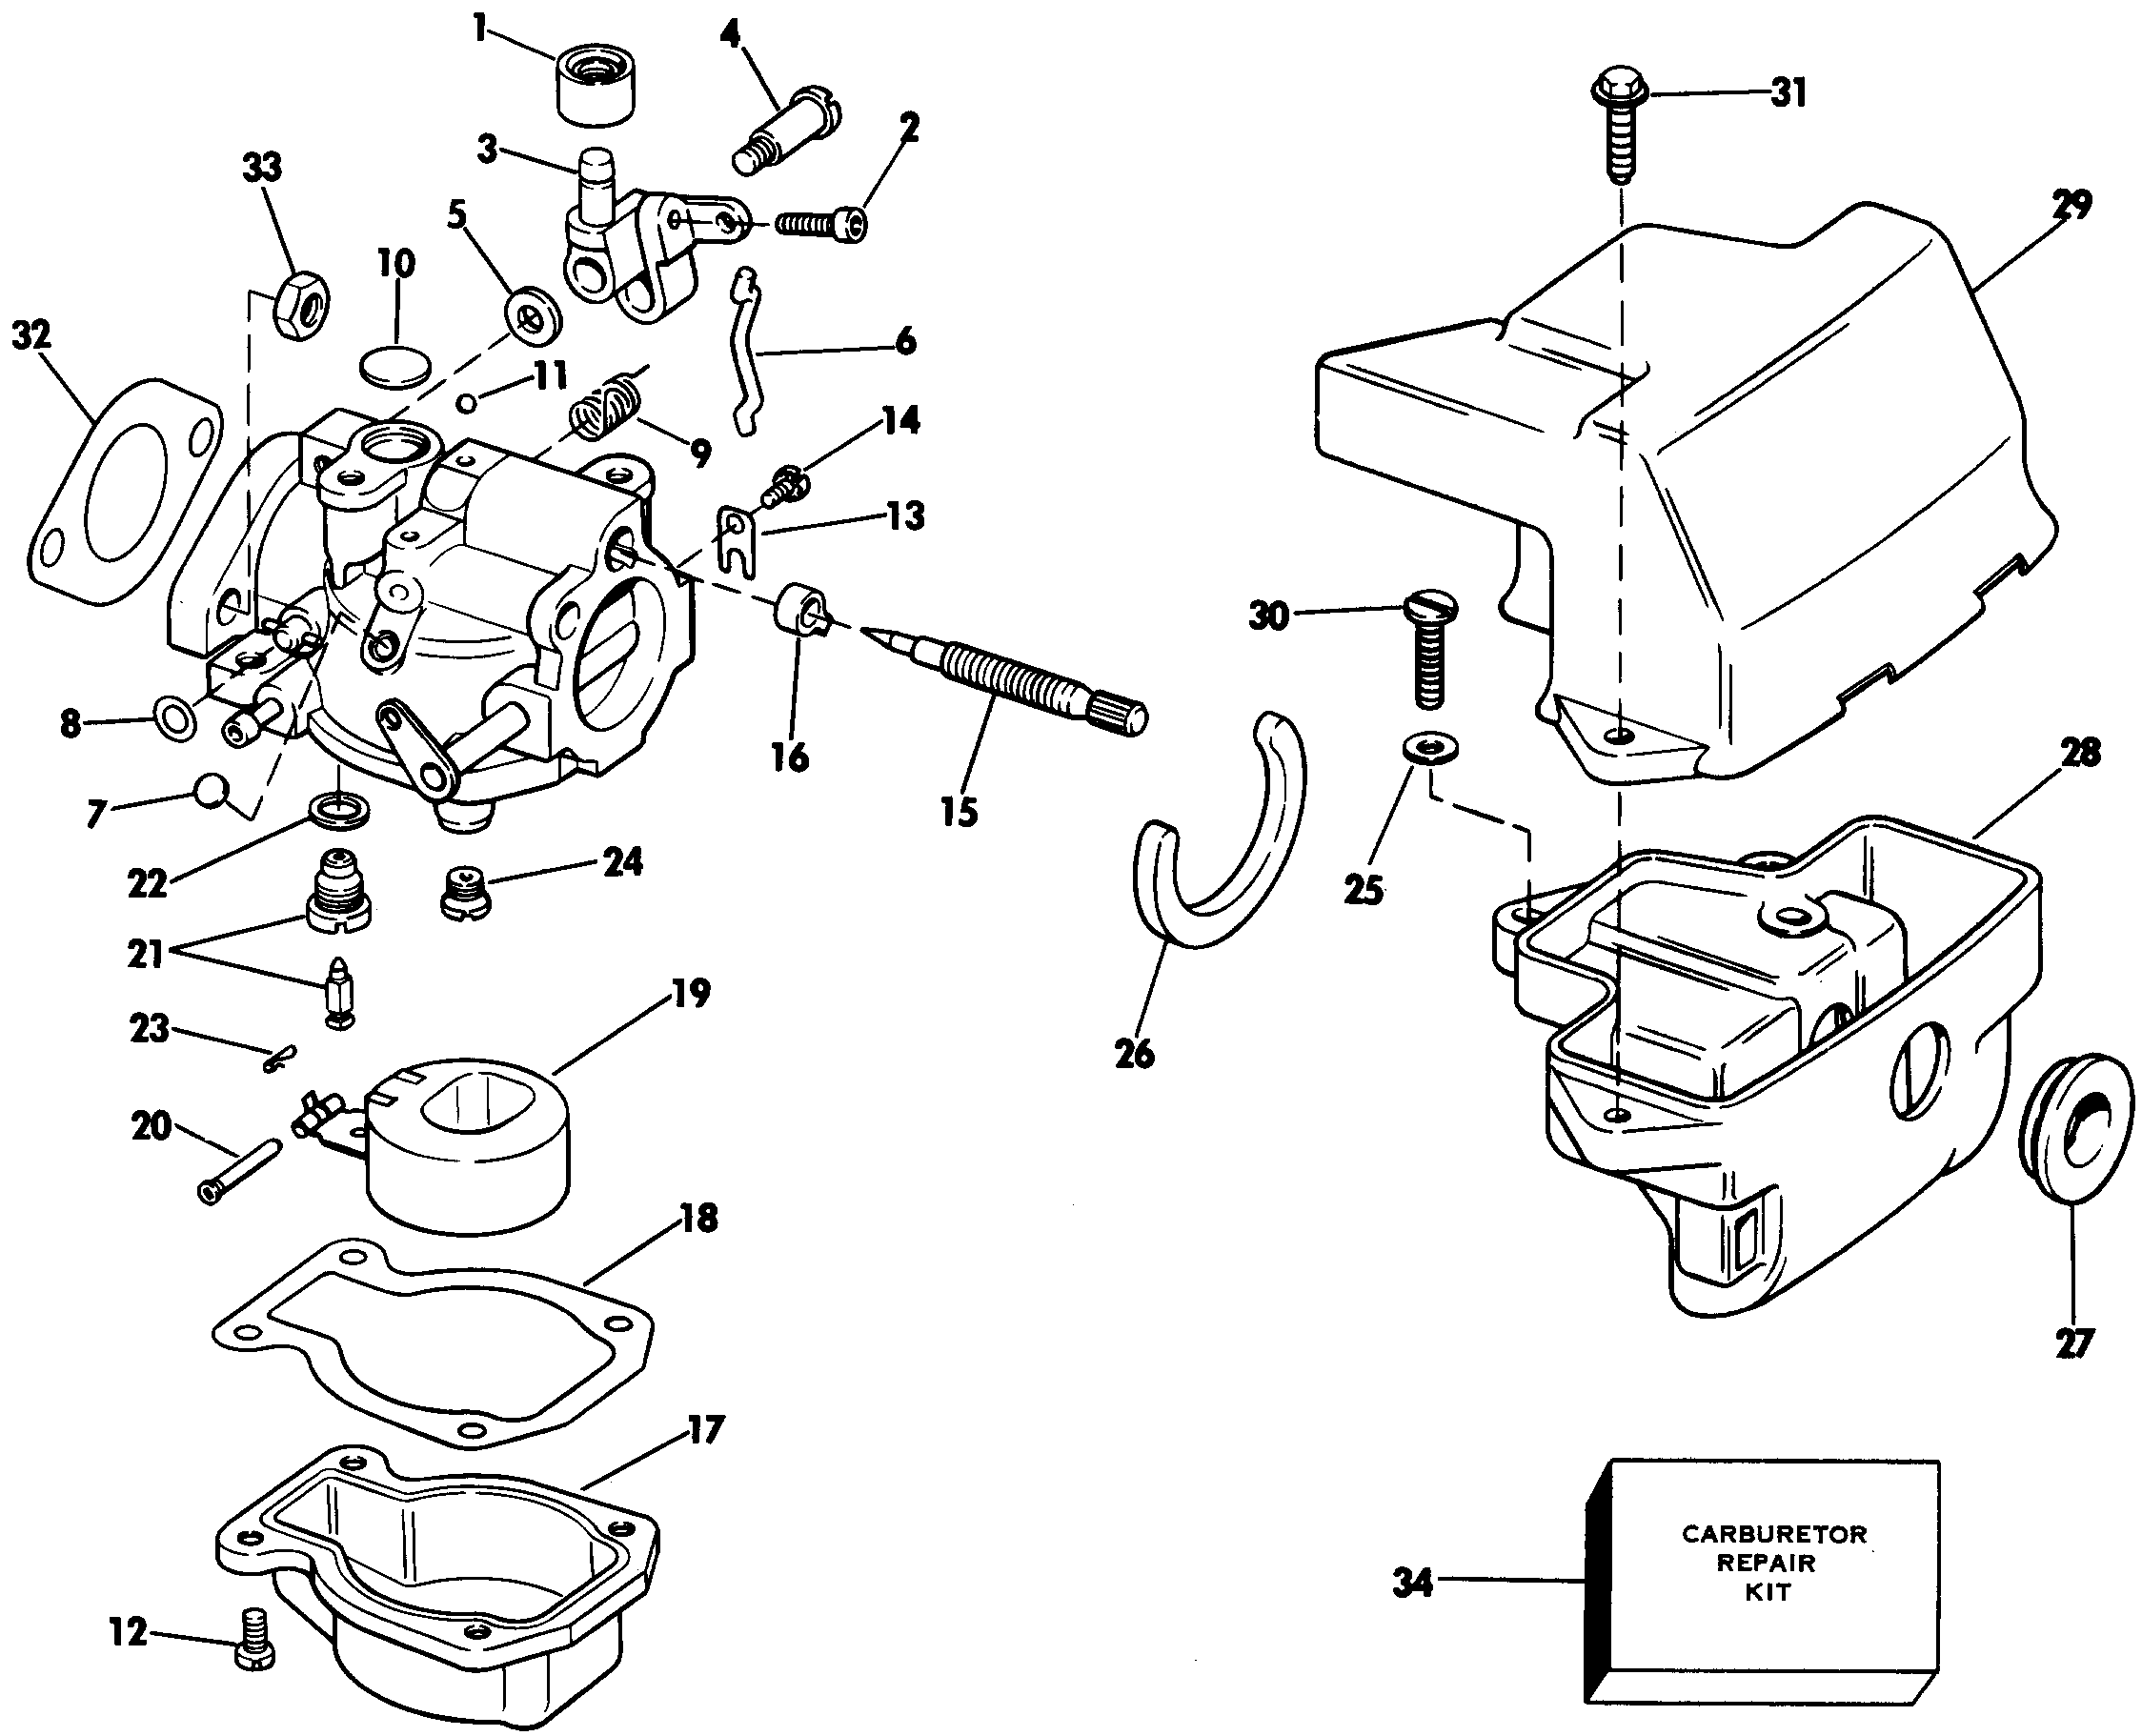 Johnson Outboard Motor Parts